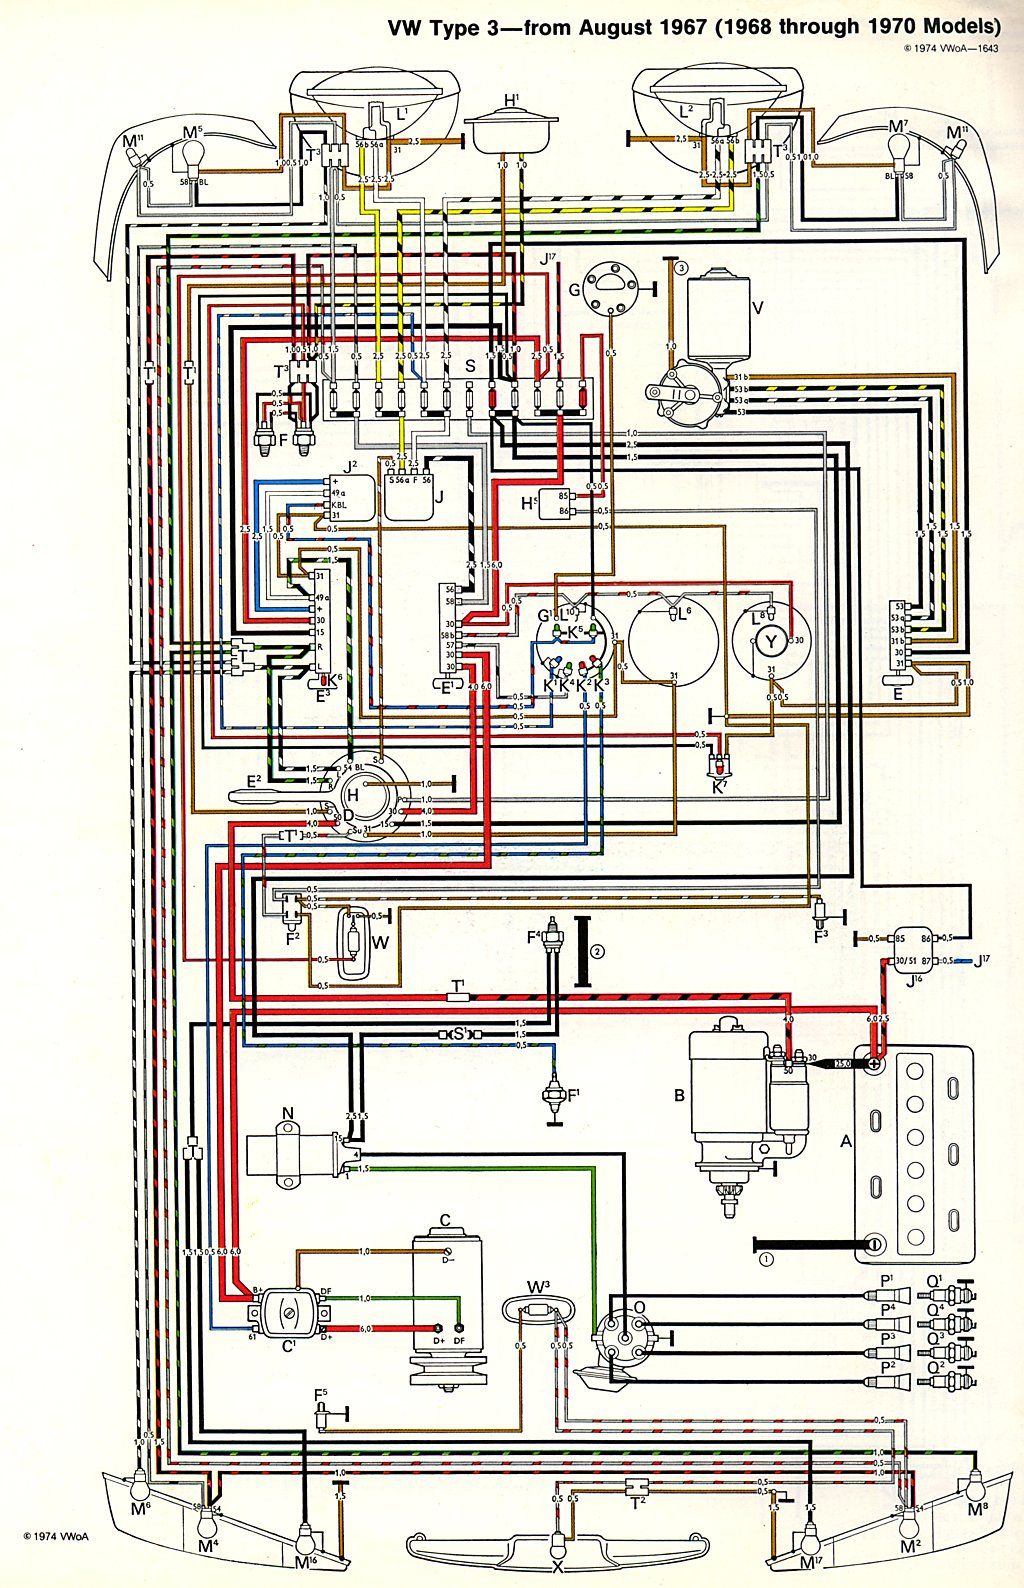 Vw Wire Diagram Wiring Schematic House Symbols 3 Way Switch Radio Shack Thesamba Com Type Diagrams Rh Toshiba Tv